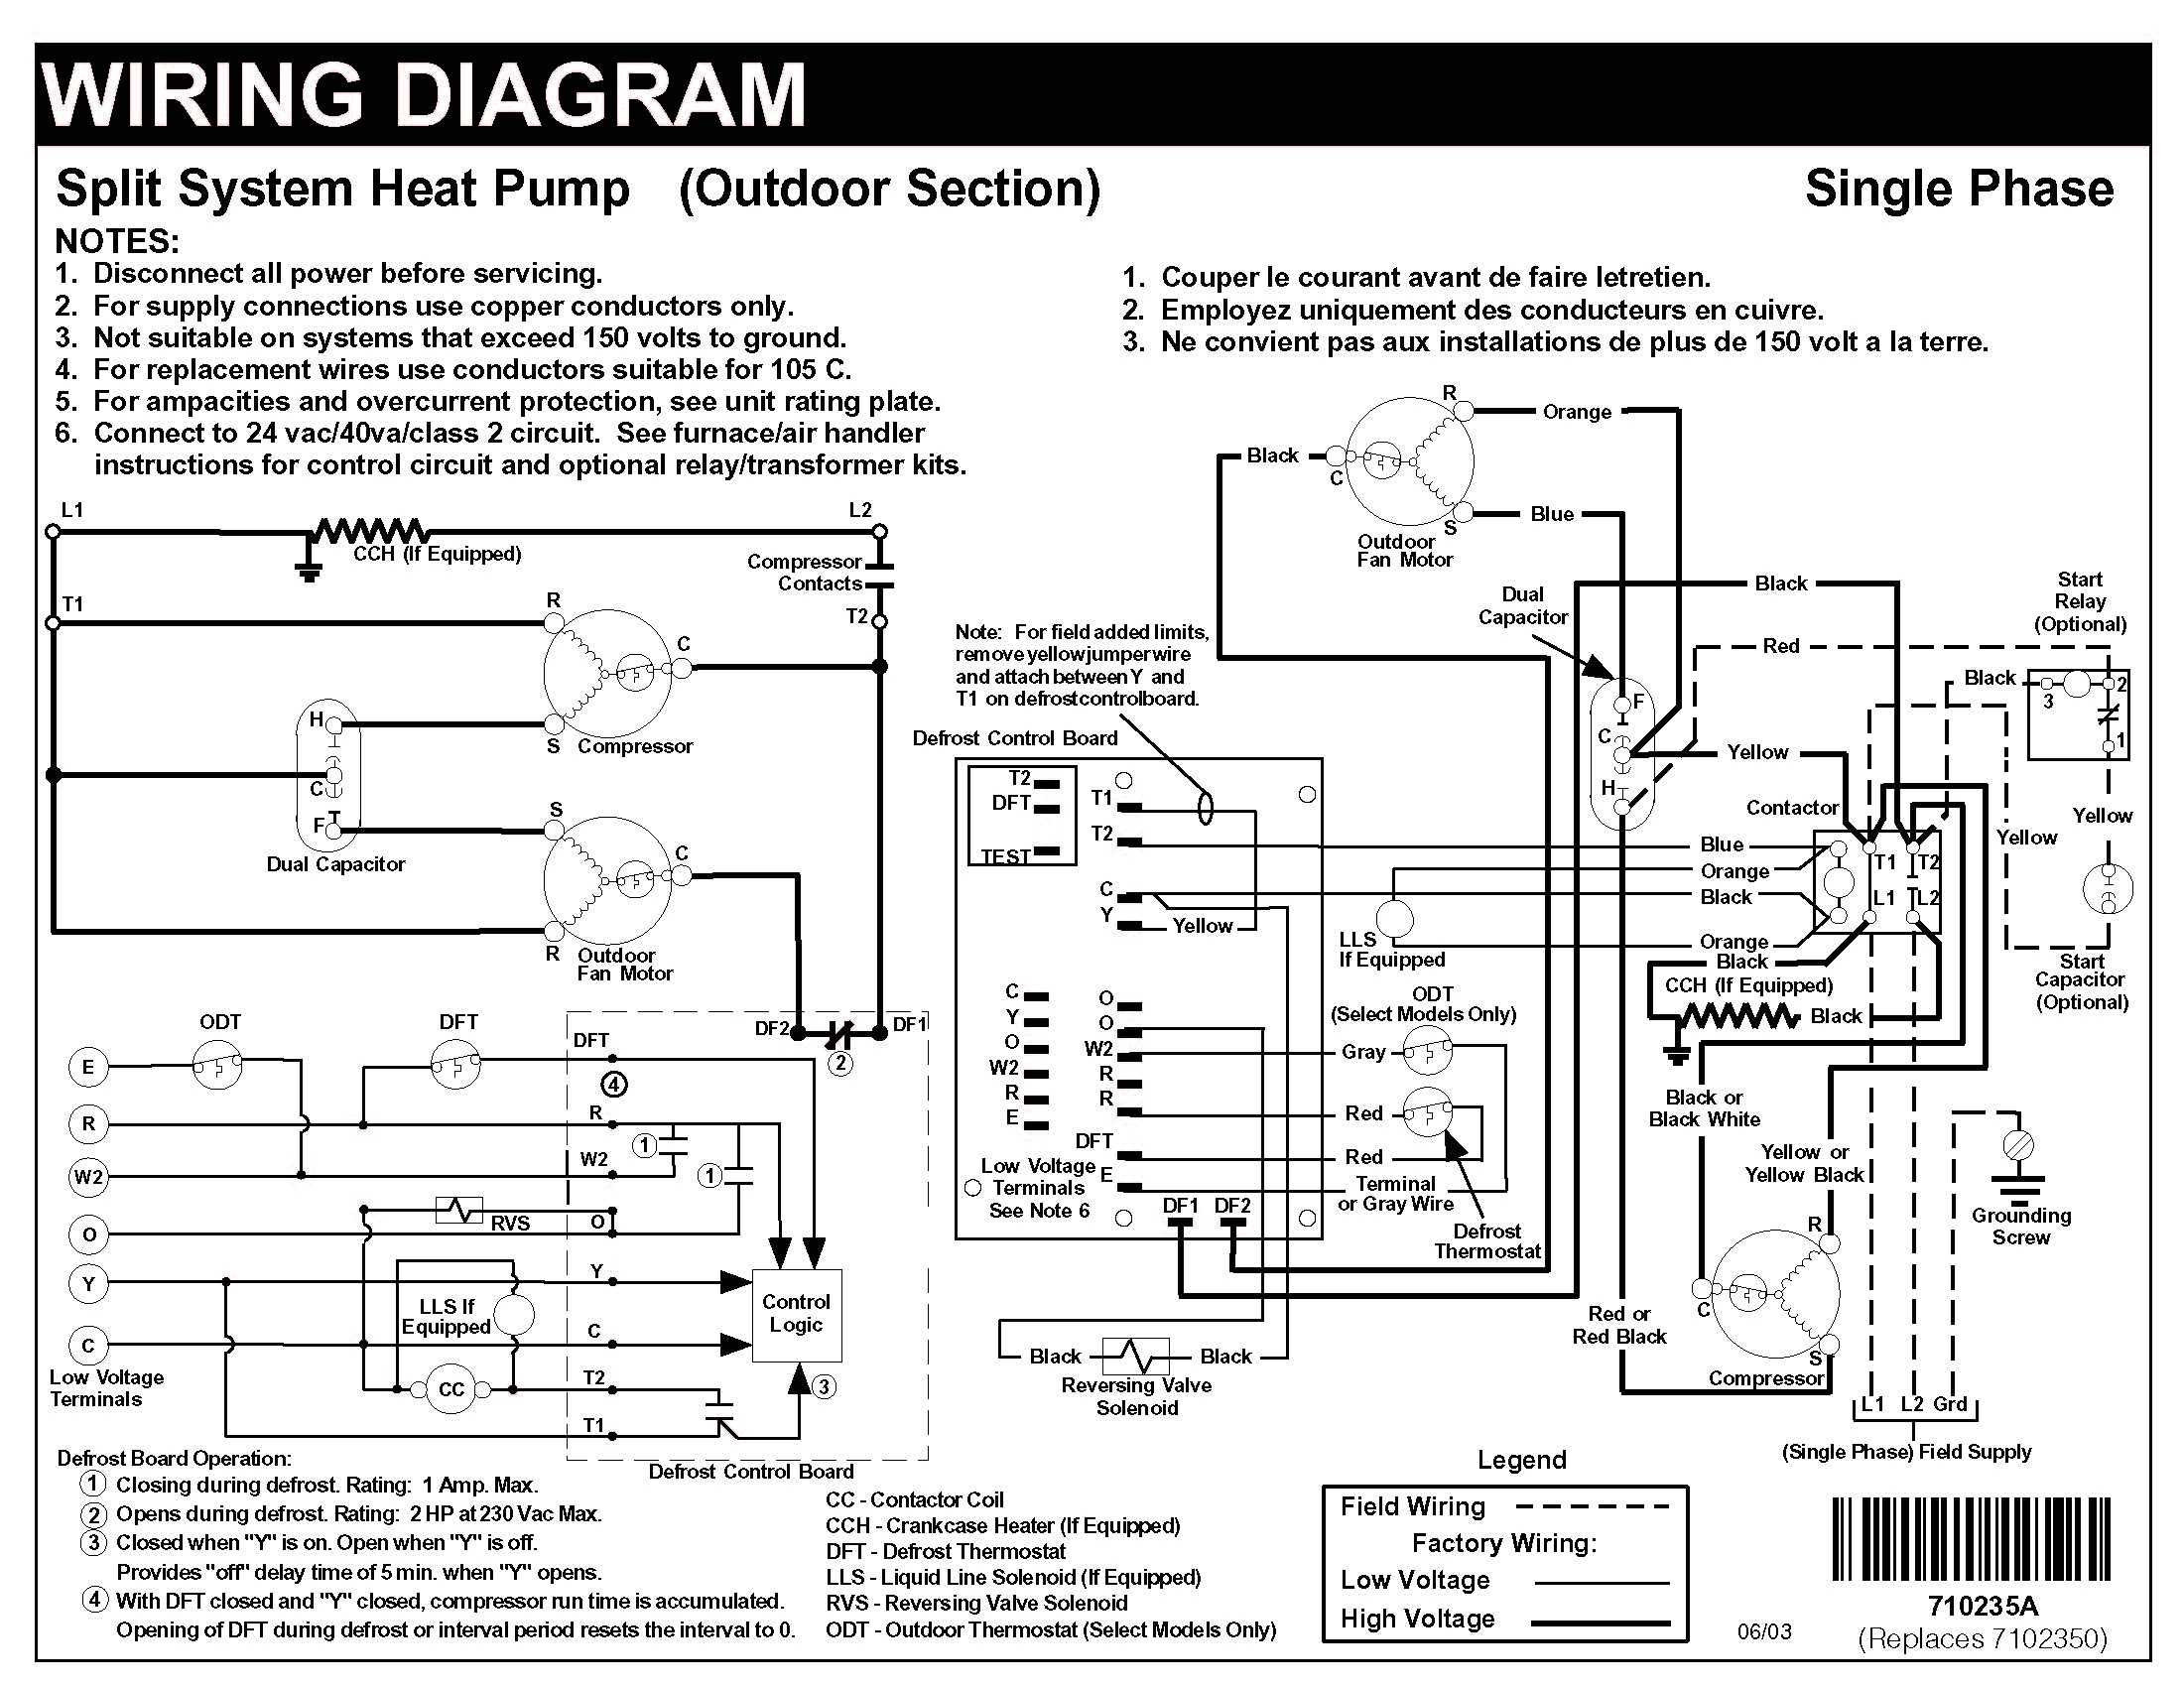 miller nordyne thermostat wiring diagram intertherm heat pump wiring diagram collection